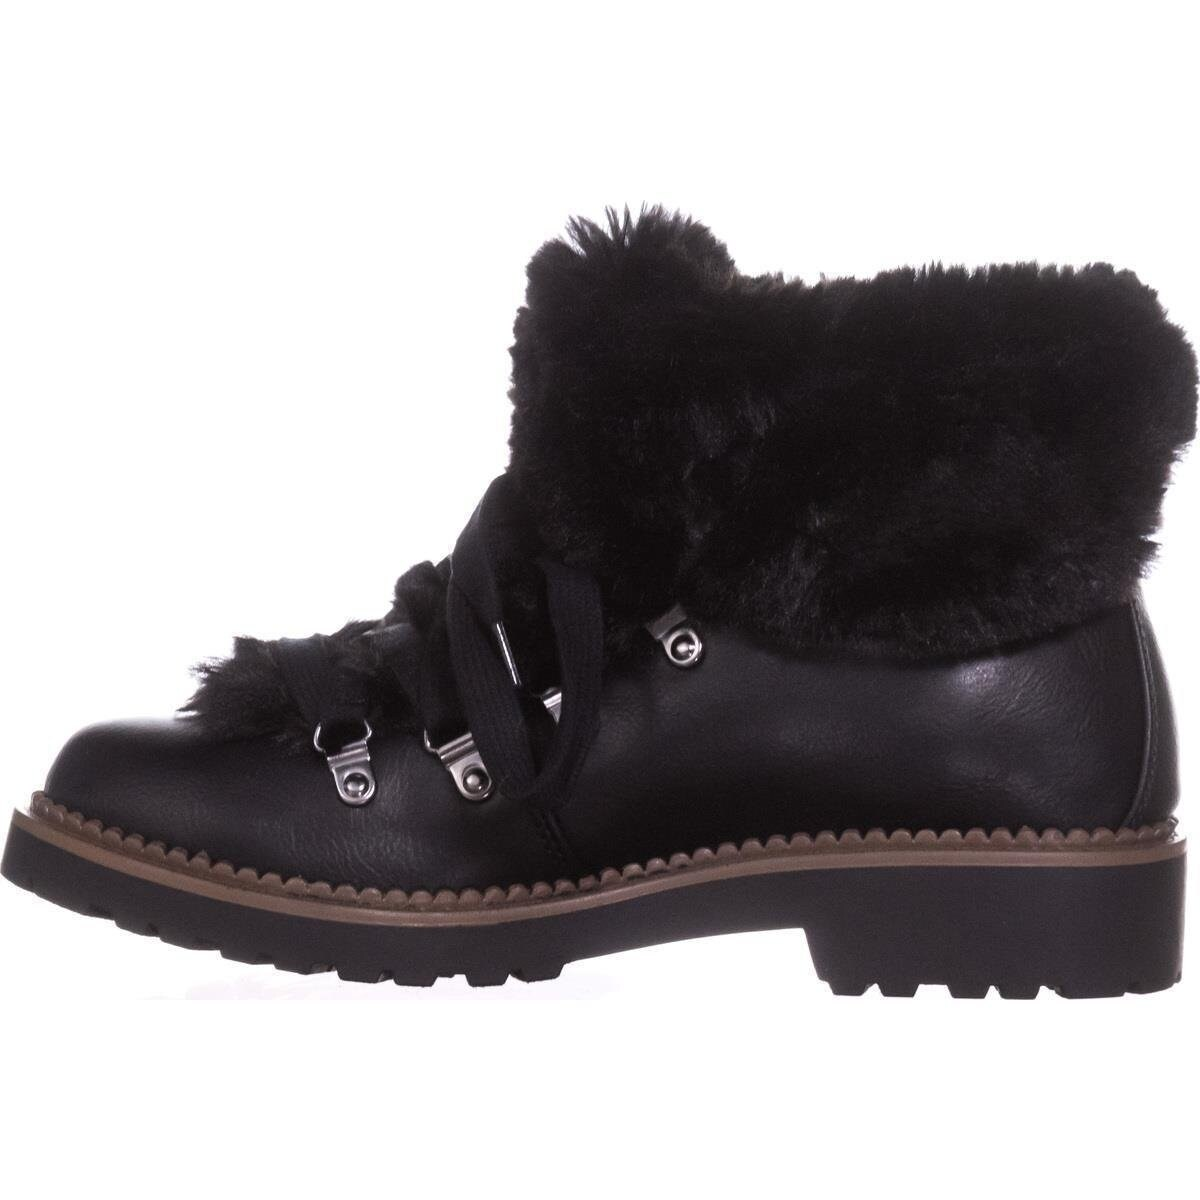 pretty nice 6a956 5db26 ESPRIT Womens cameron-e Faux Fur Closed Toe Ankle Cold Weather Boots